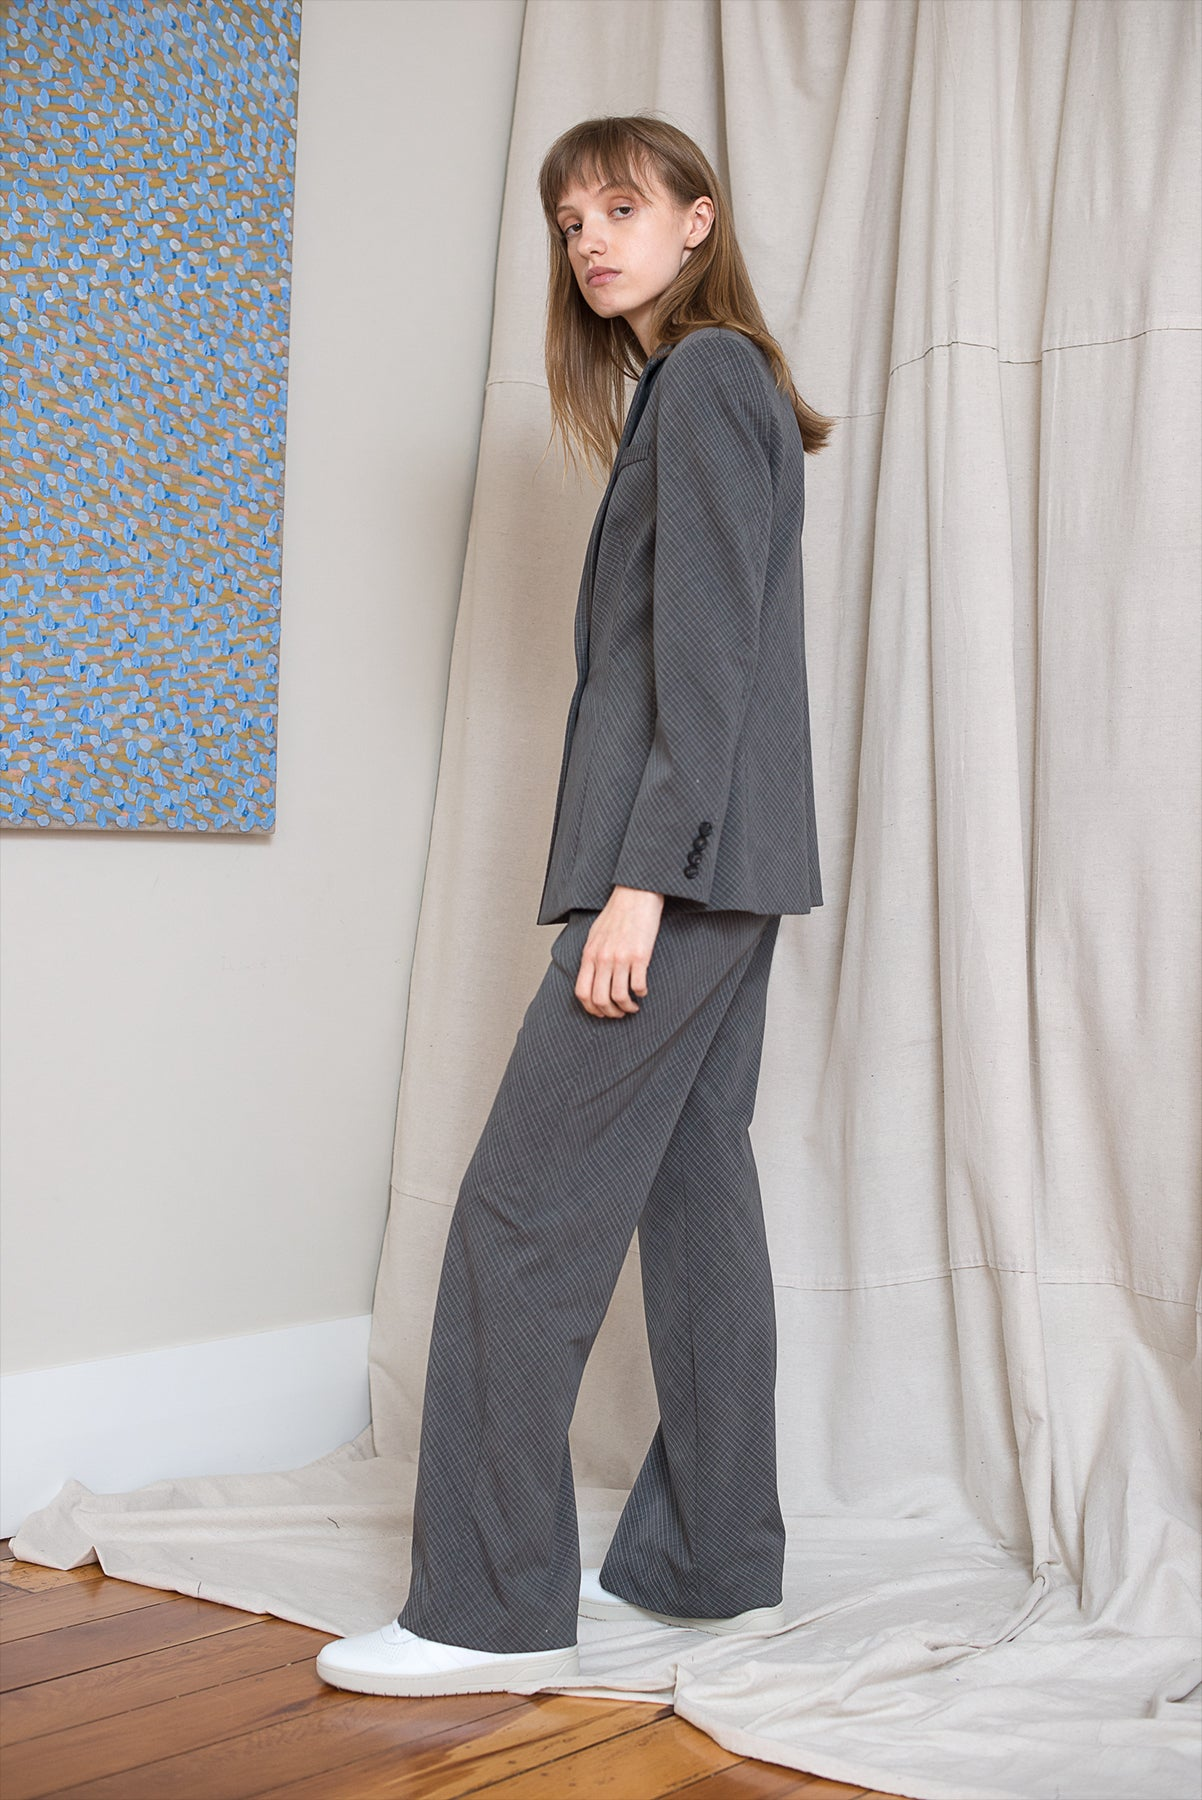 Slanted Blazer - Charcoal Check - LOCLAIRE